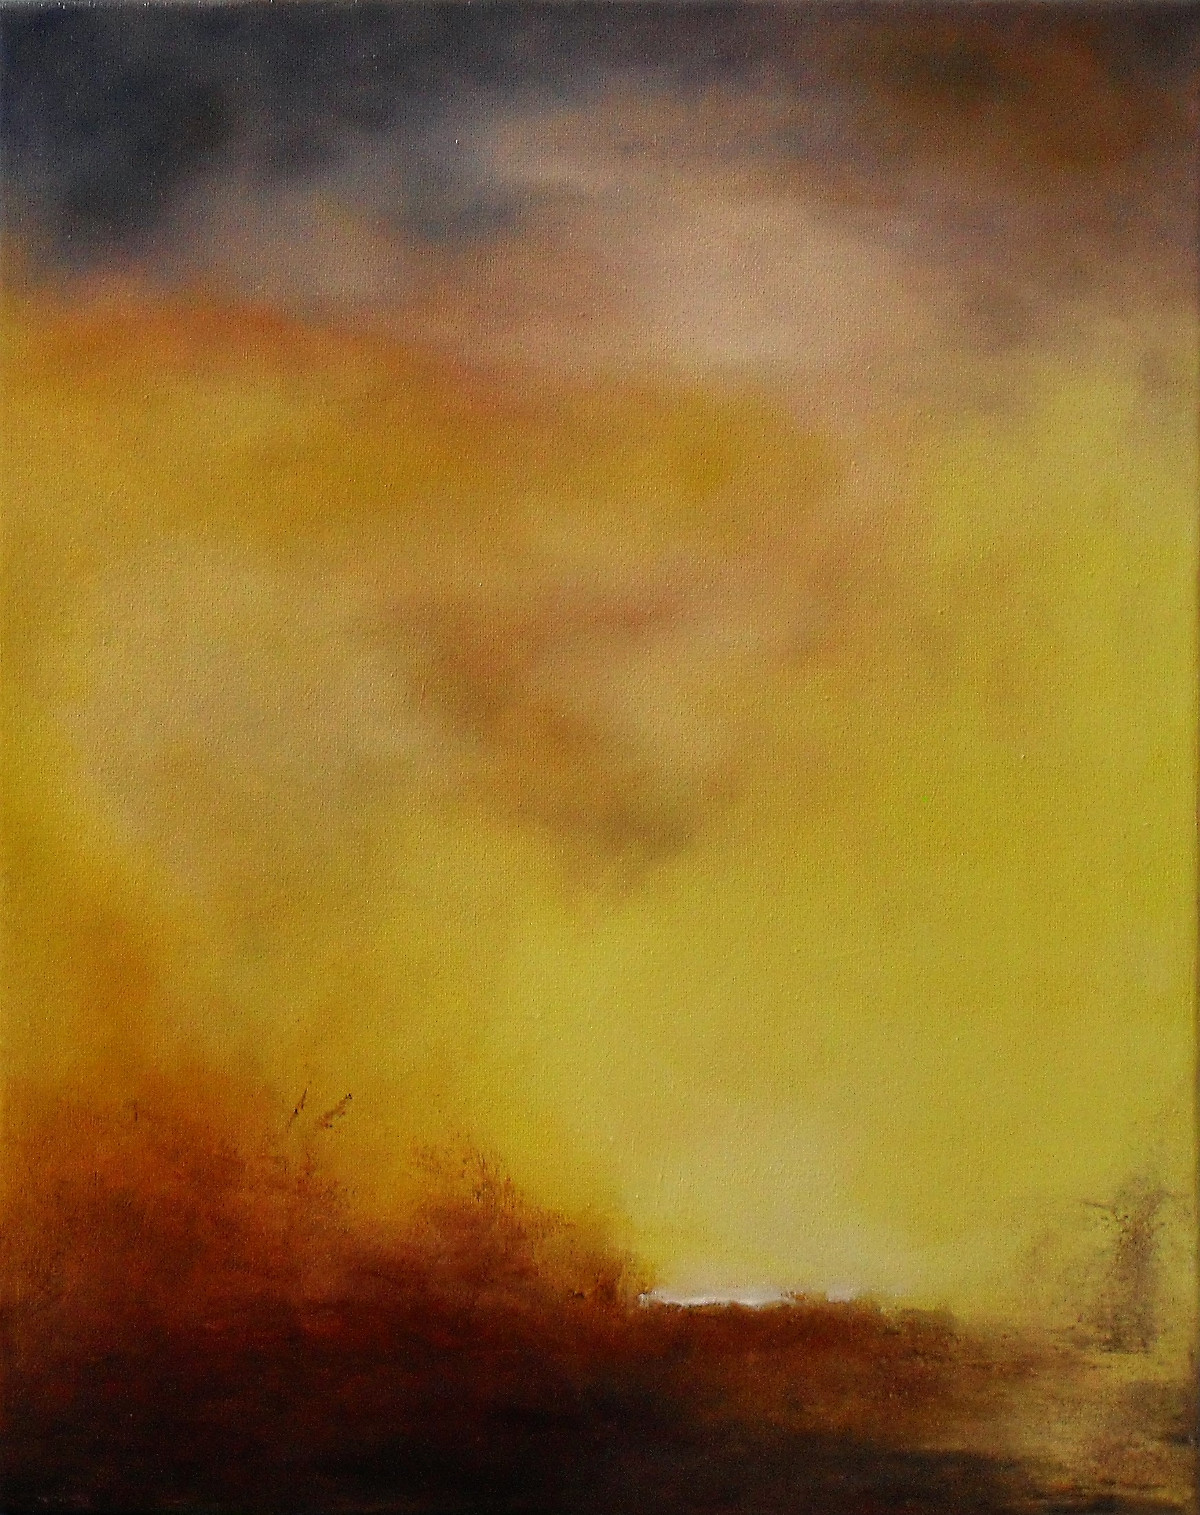 Moment of Light, oil on canvas by Lia van Elffenbrinck, Yellow Light above the horizon.